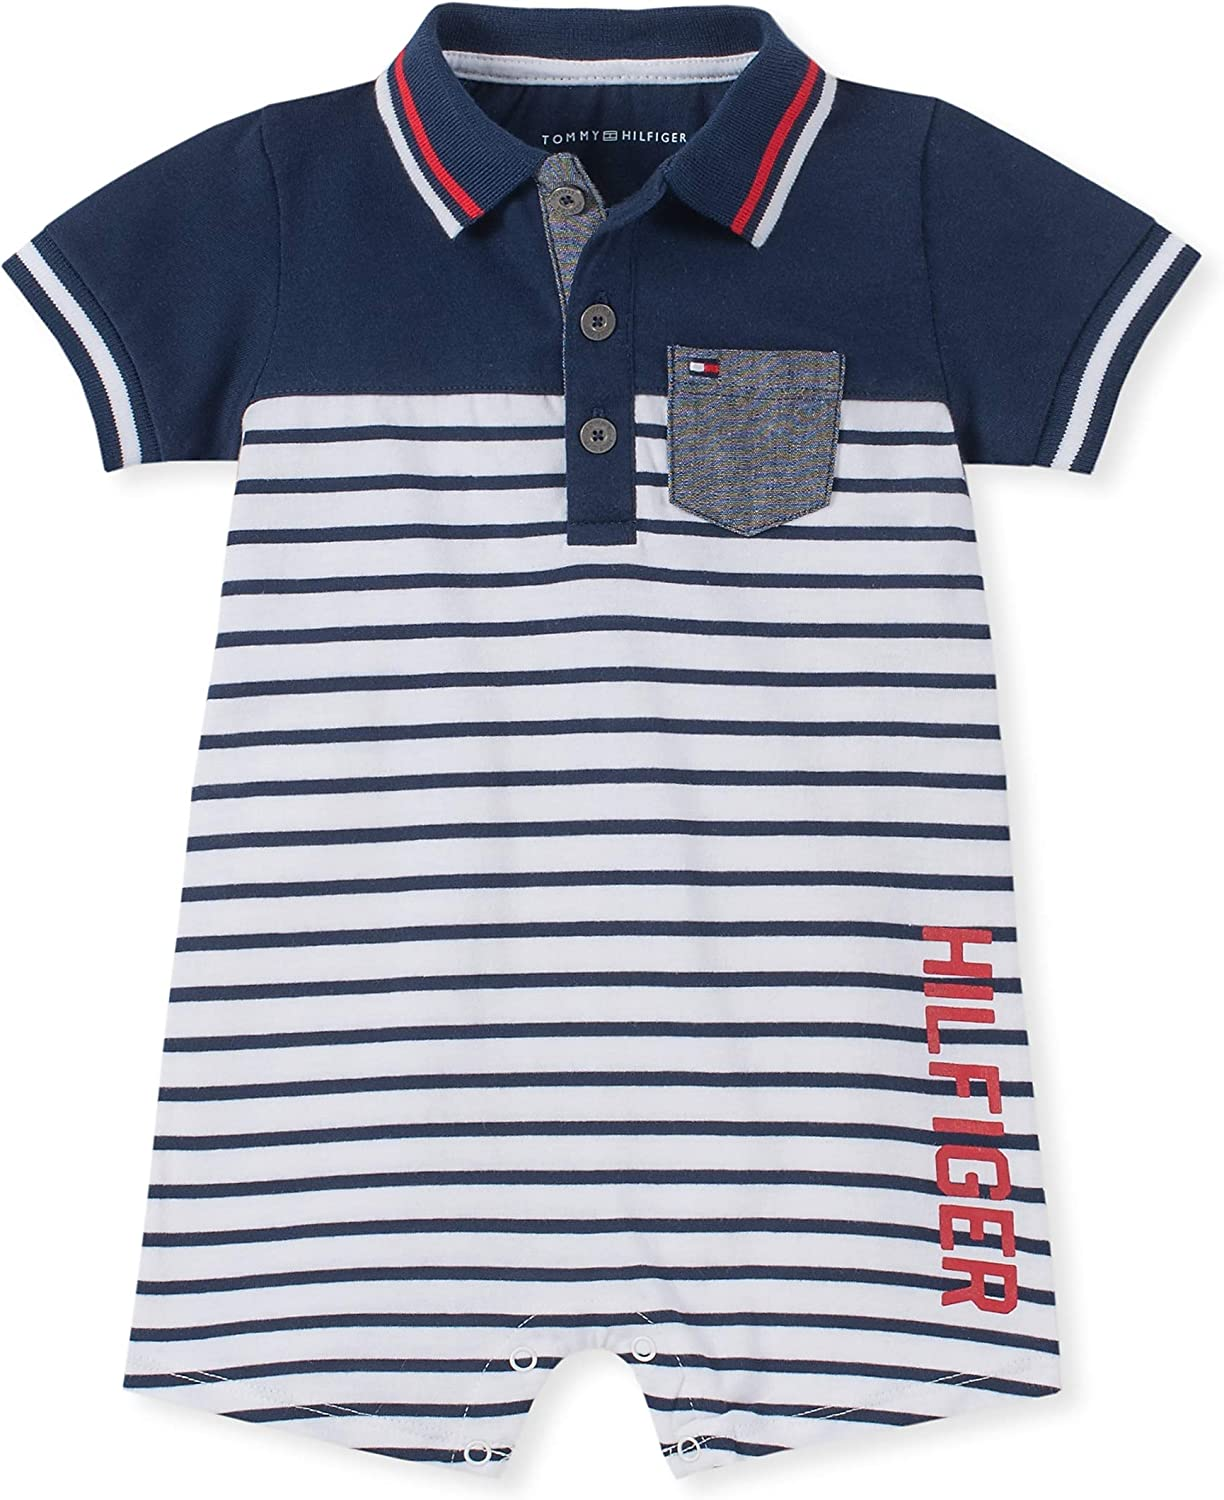 Amazon.com: Tommy Hilfiger - Pelele para bebé: Clothing